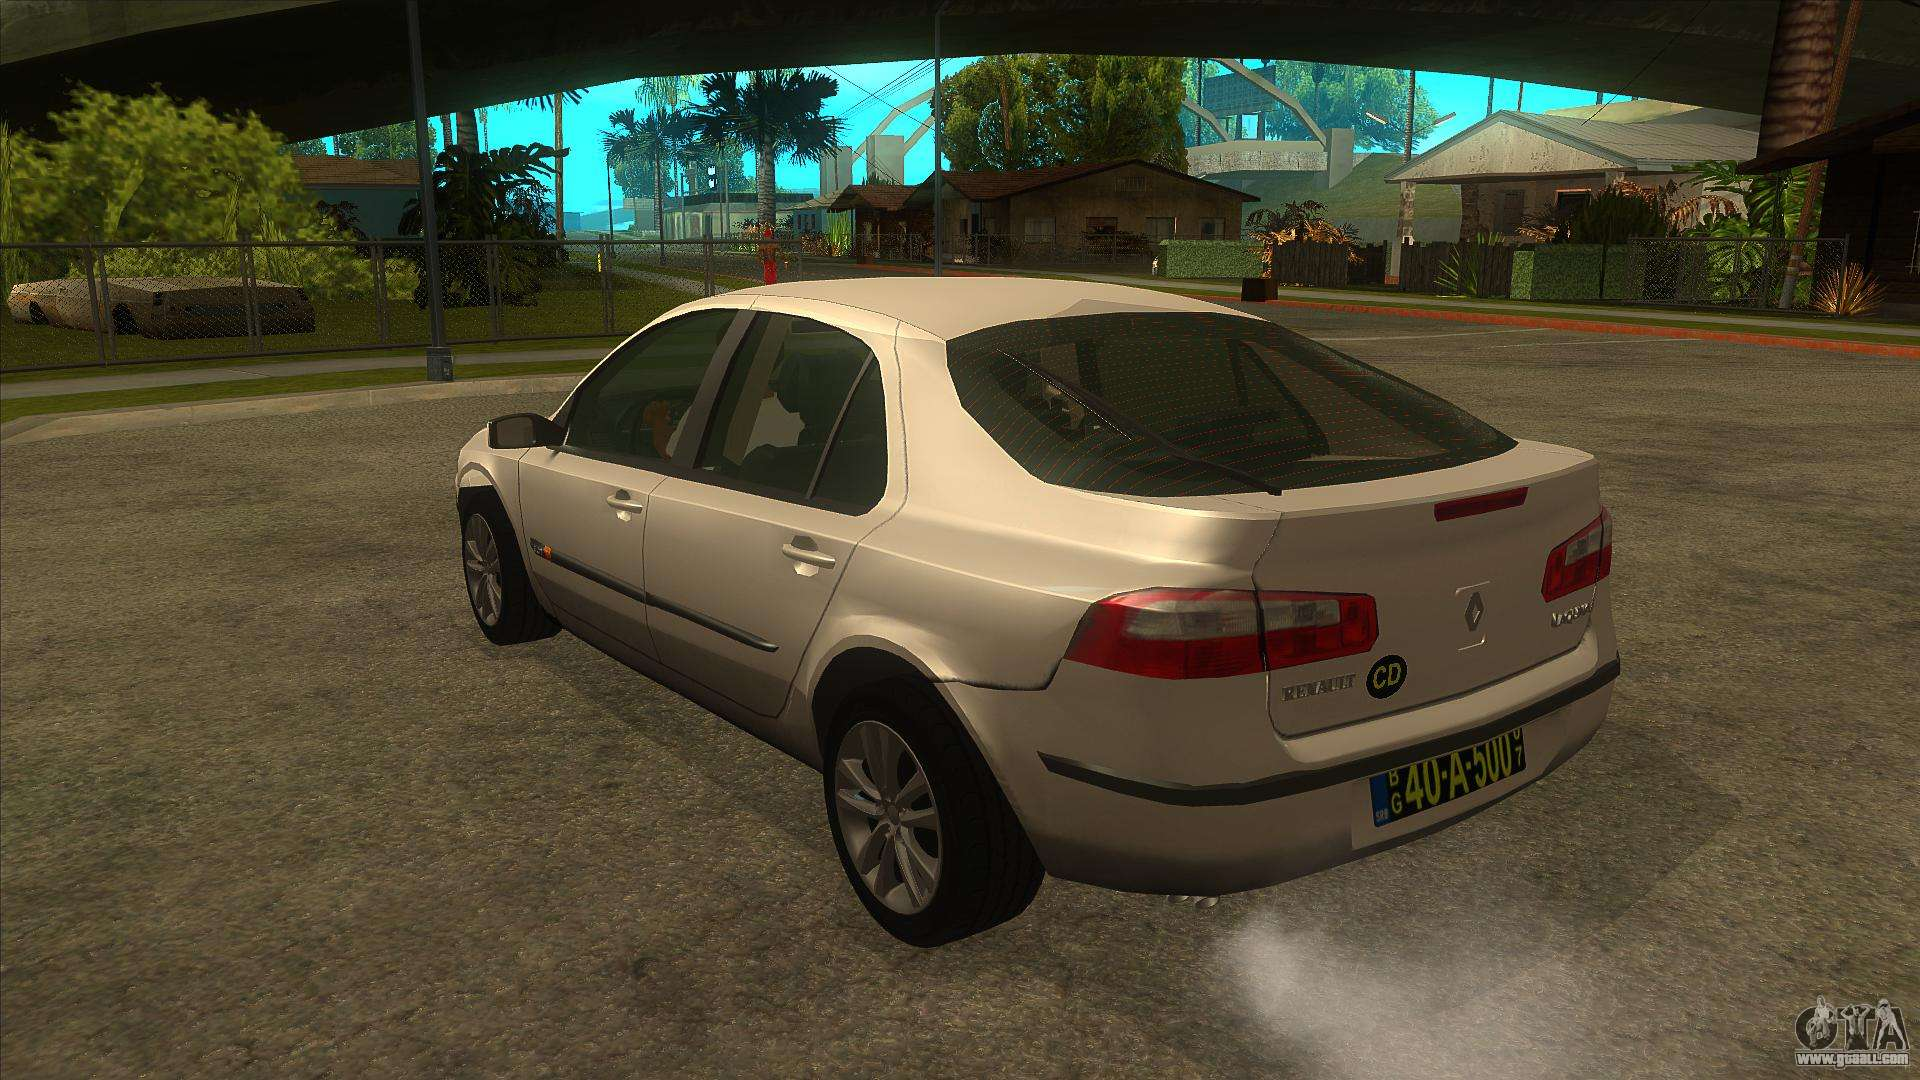 renault laguna mk2 diplomatsko kola for gta san andreas. Black Bedroom Furniture Sets. Home Design Ideas